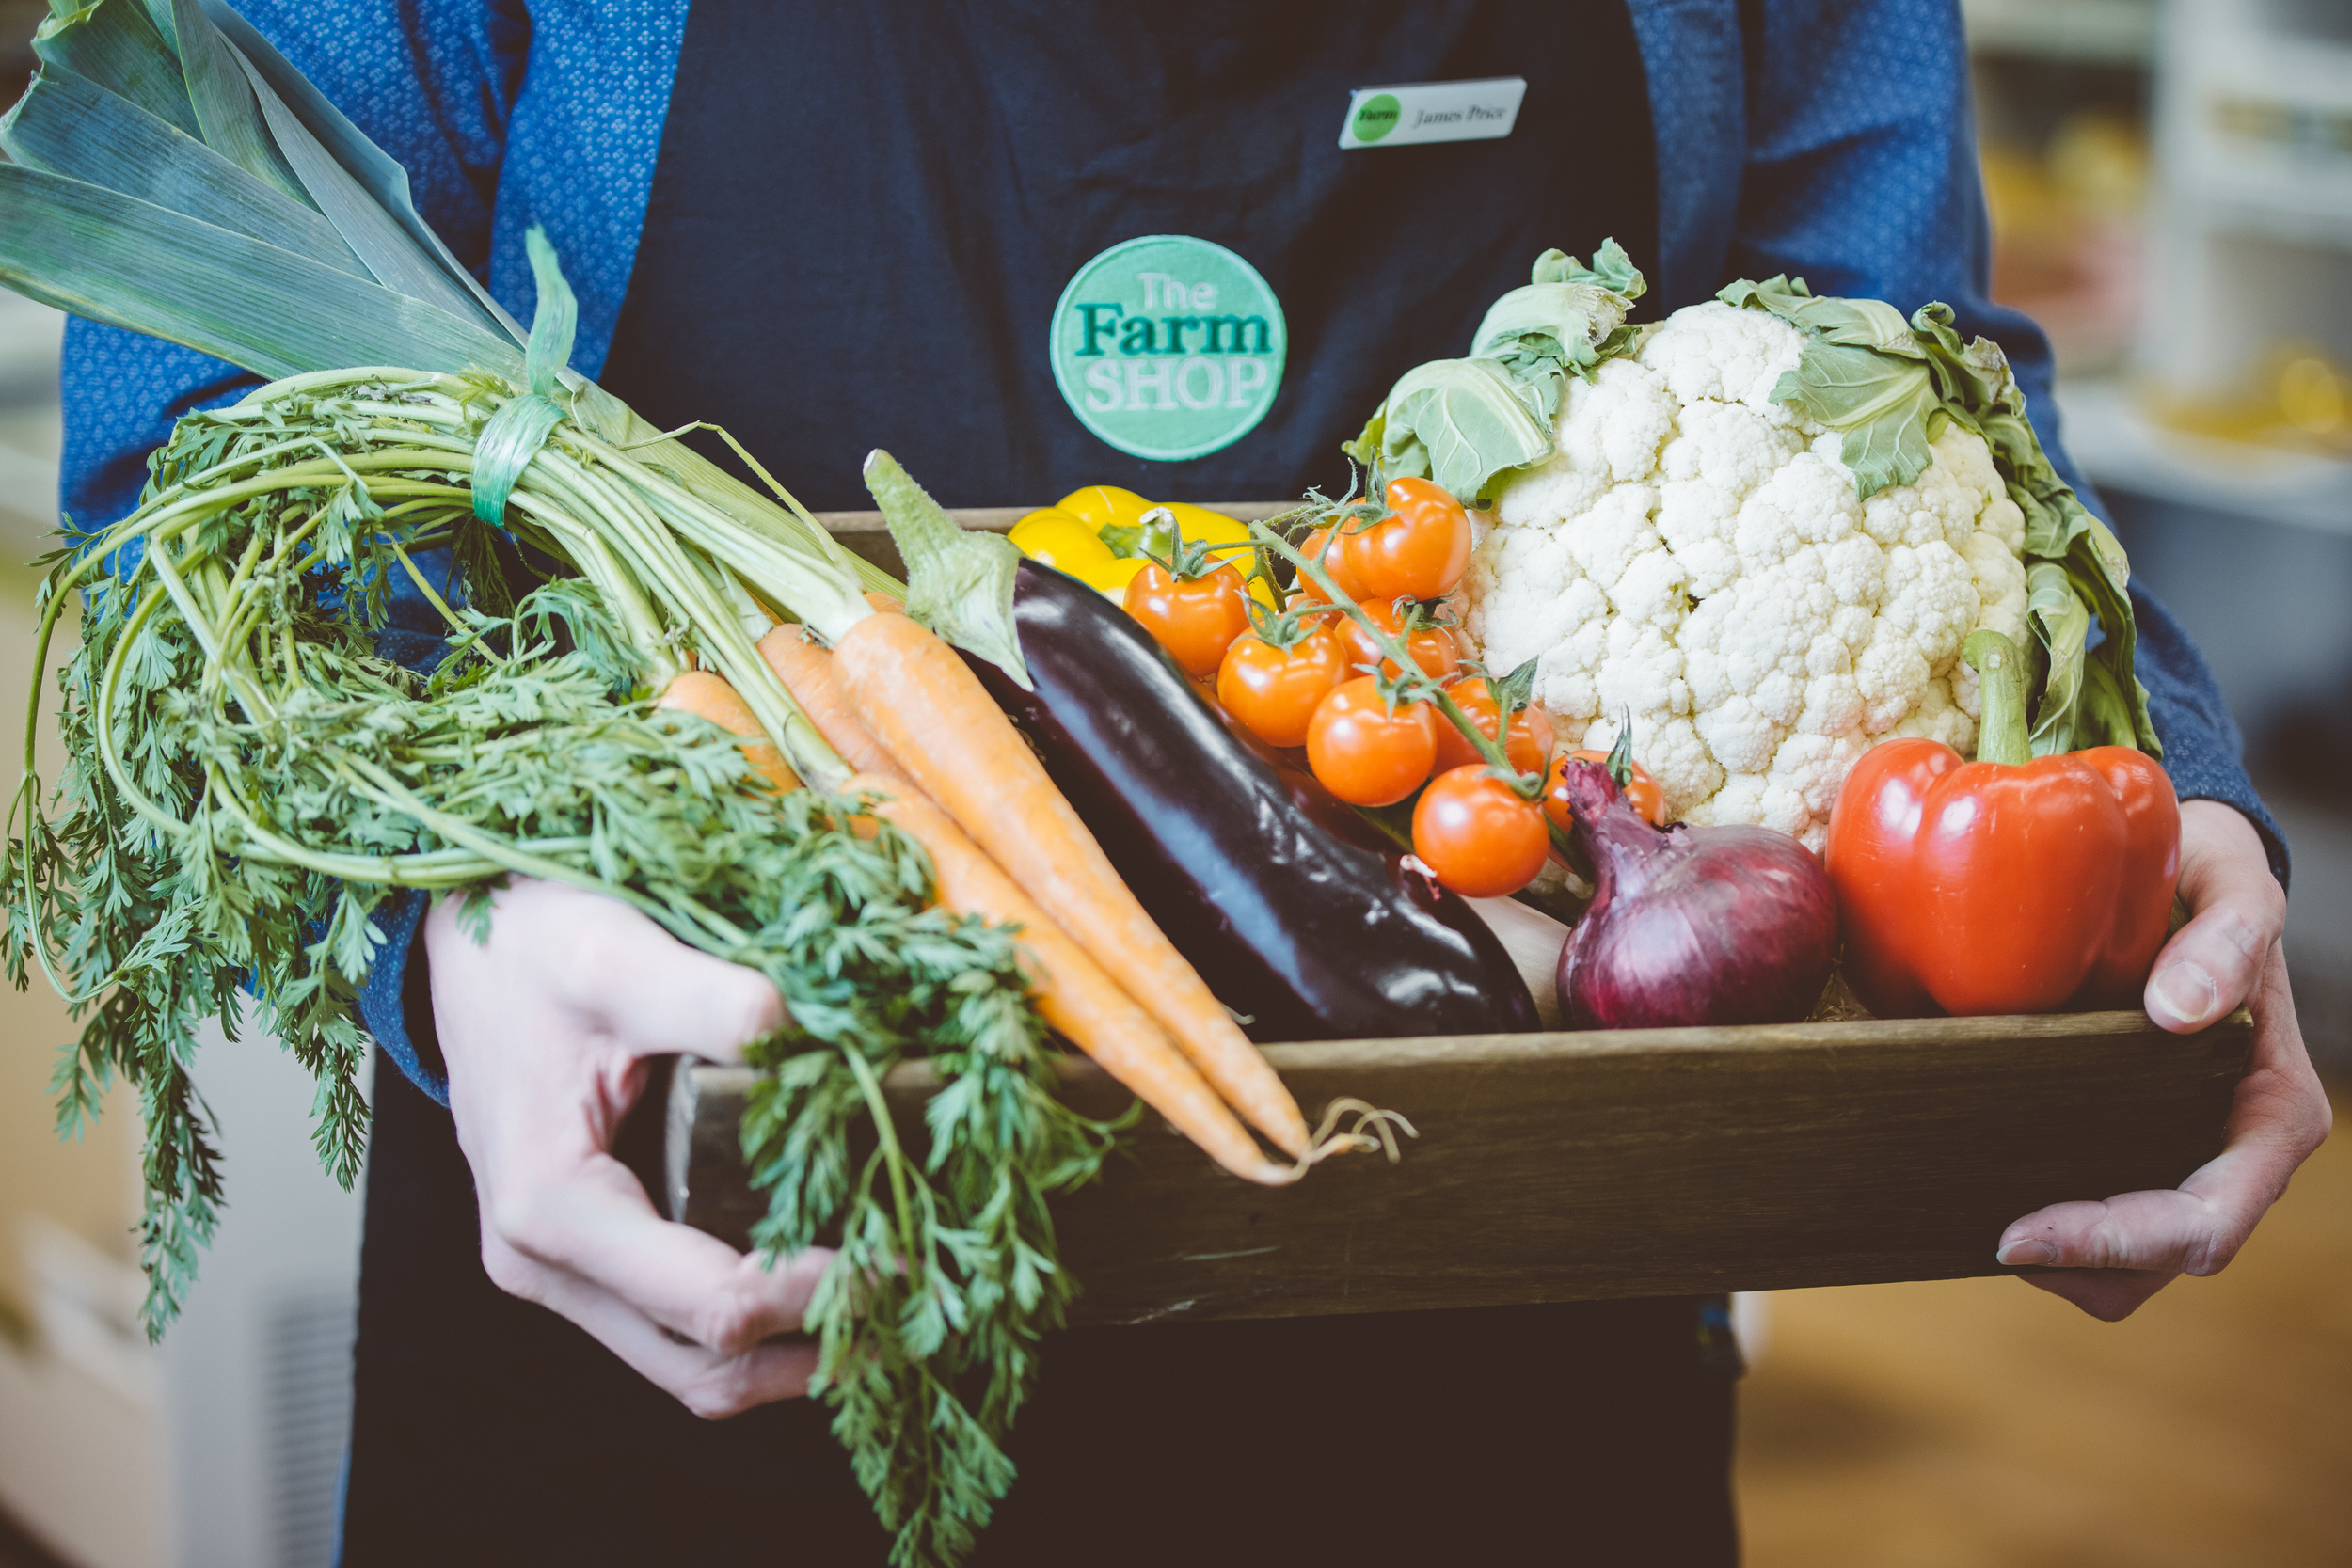 Chichester-food-farm-shop-local-produce-london-portsmouth-photographer-0076.jpg